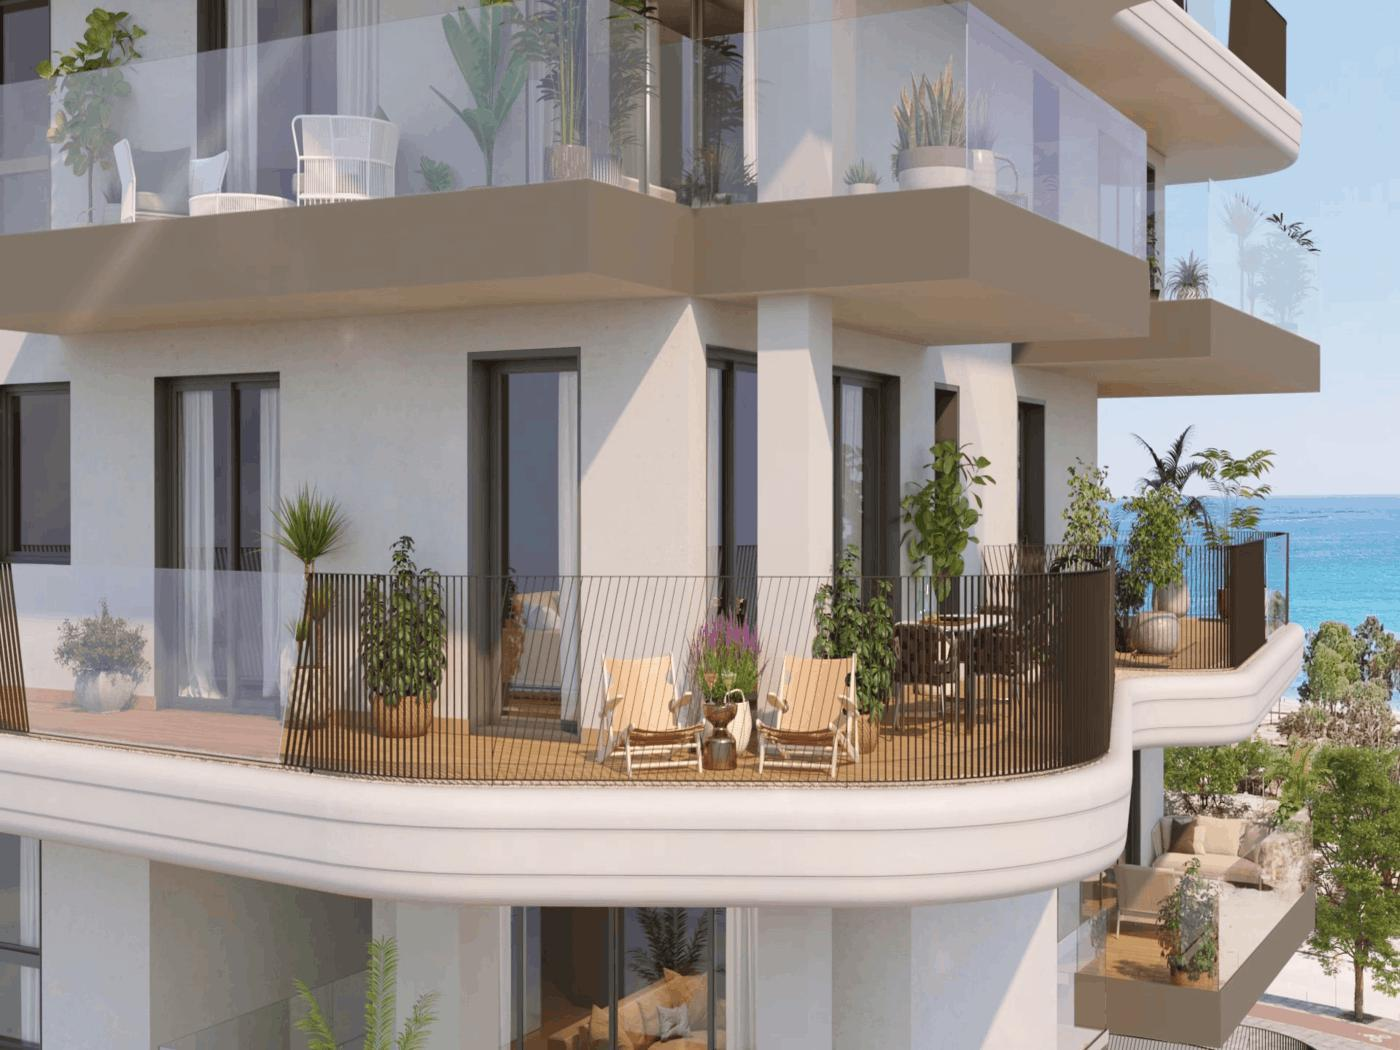 Photogallery - 24 - Exceptional homes in the Costa Blanca. Unparalleled Service. Exceptional properties in the Costa Blanca